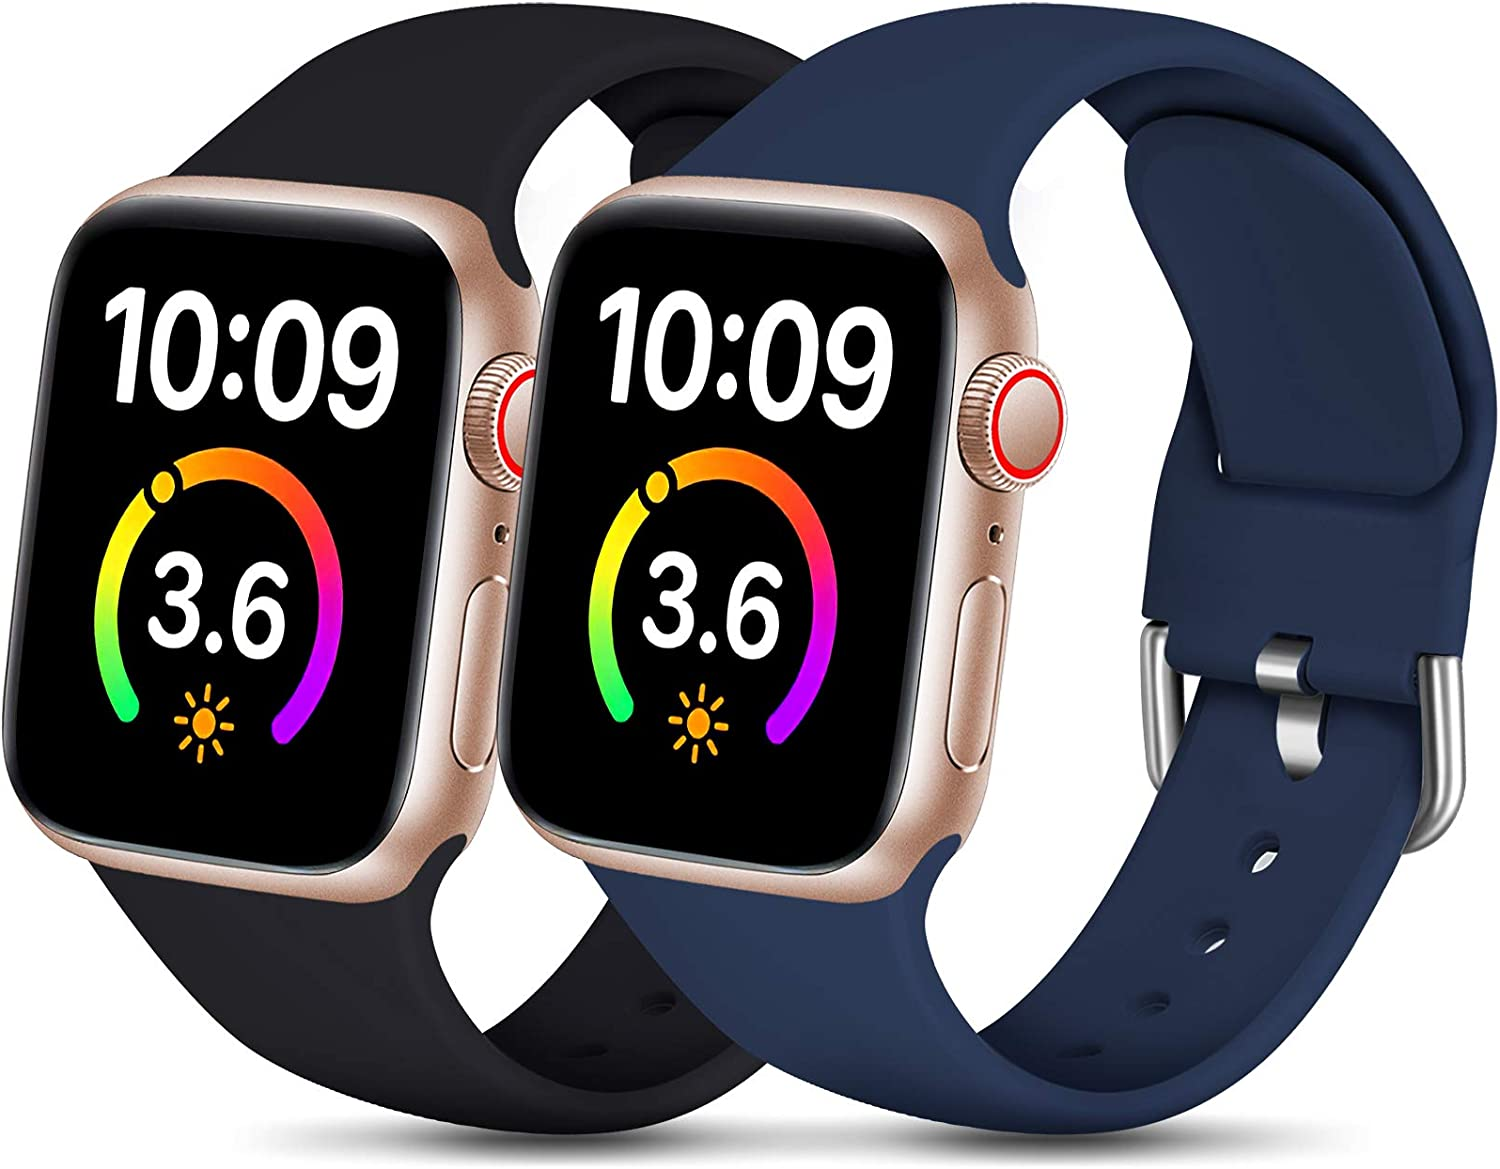 Dirrelo Compatible for Apple Watch Bands 40mm 38mm Series SE 6 5 4 3 2 1 Strap, Soft Silicone Replacement Sport Wrist Band for iwatch Band Women Men, Small Black & Dark Blue 2-Pack